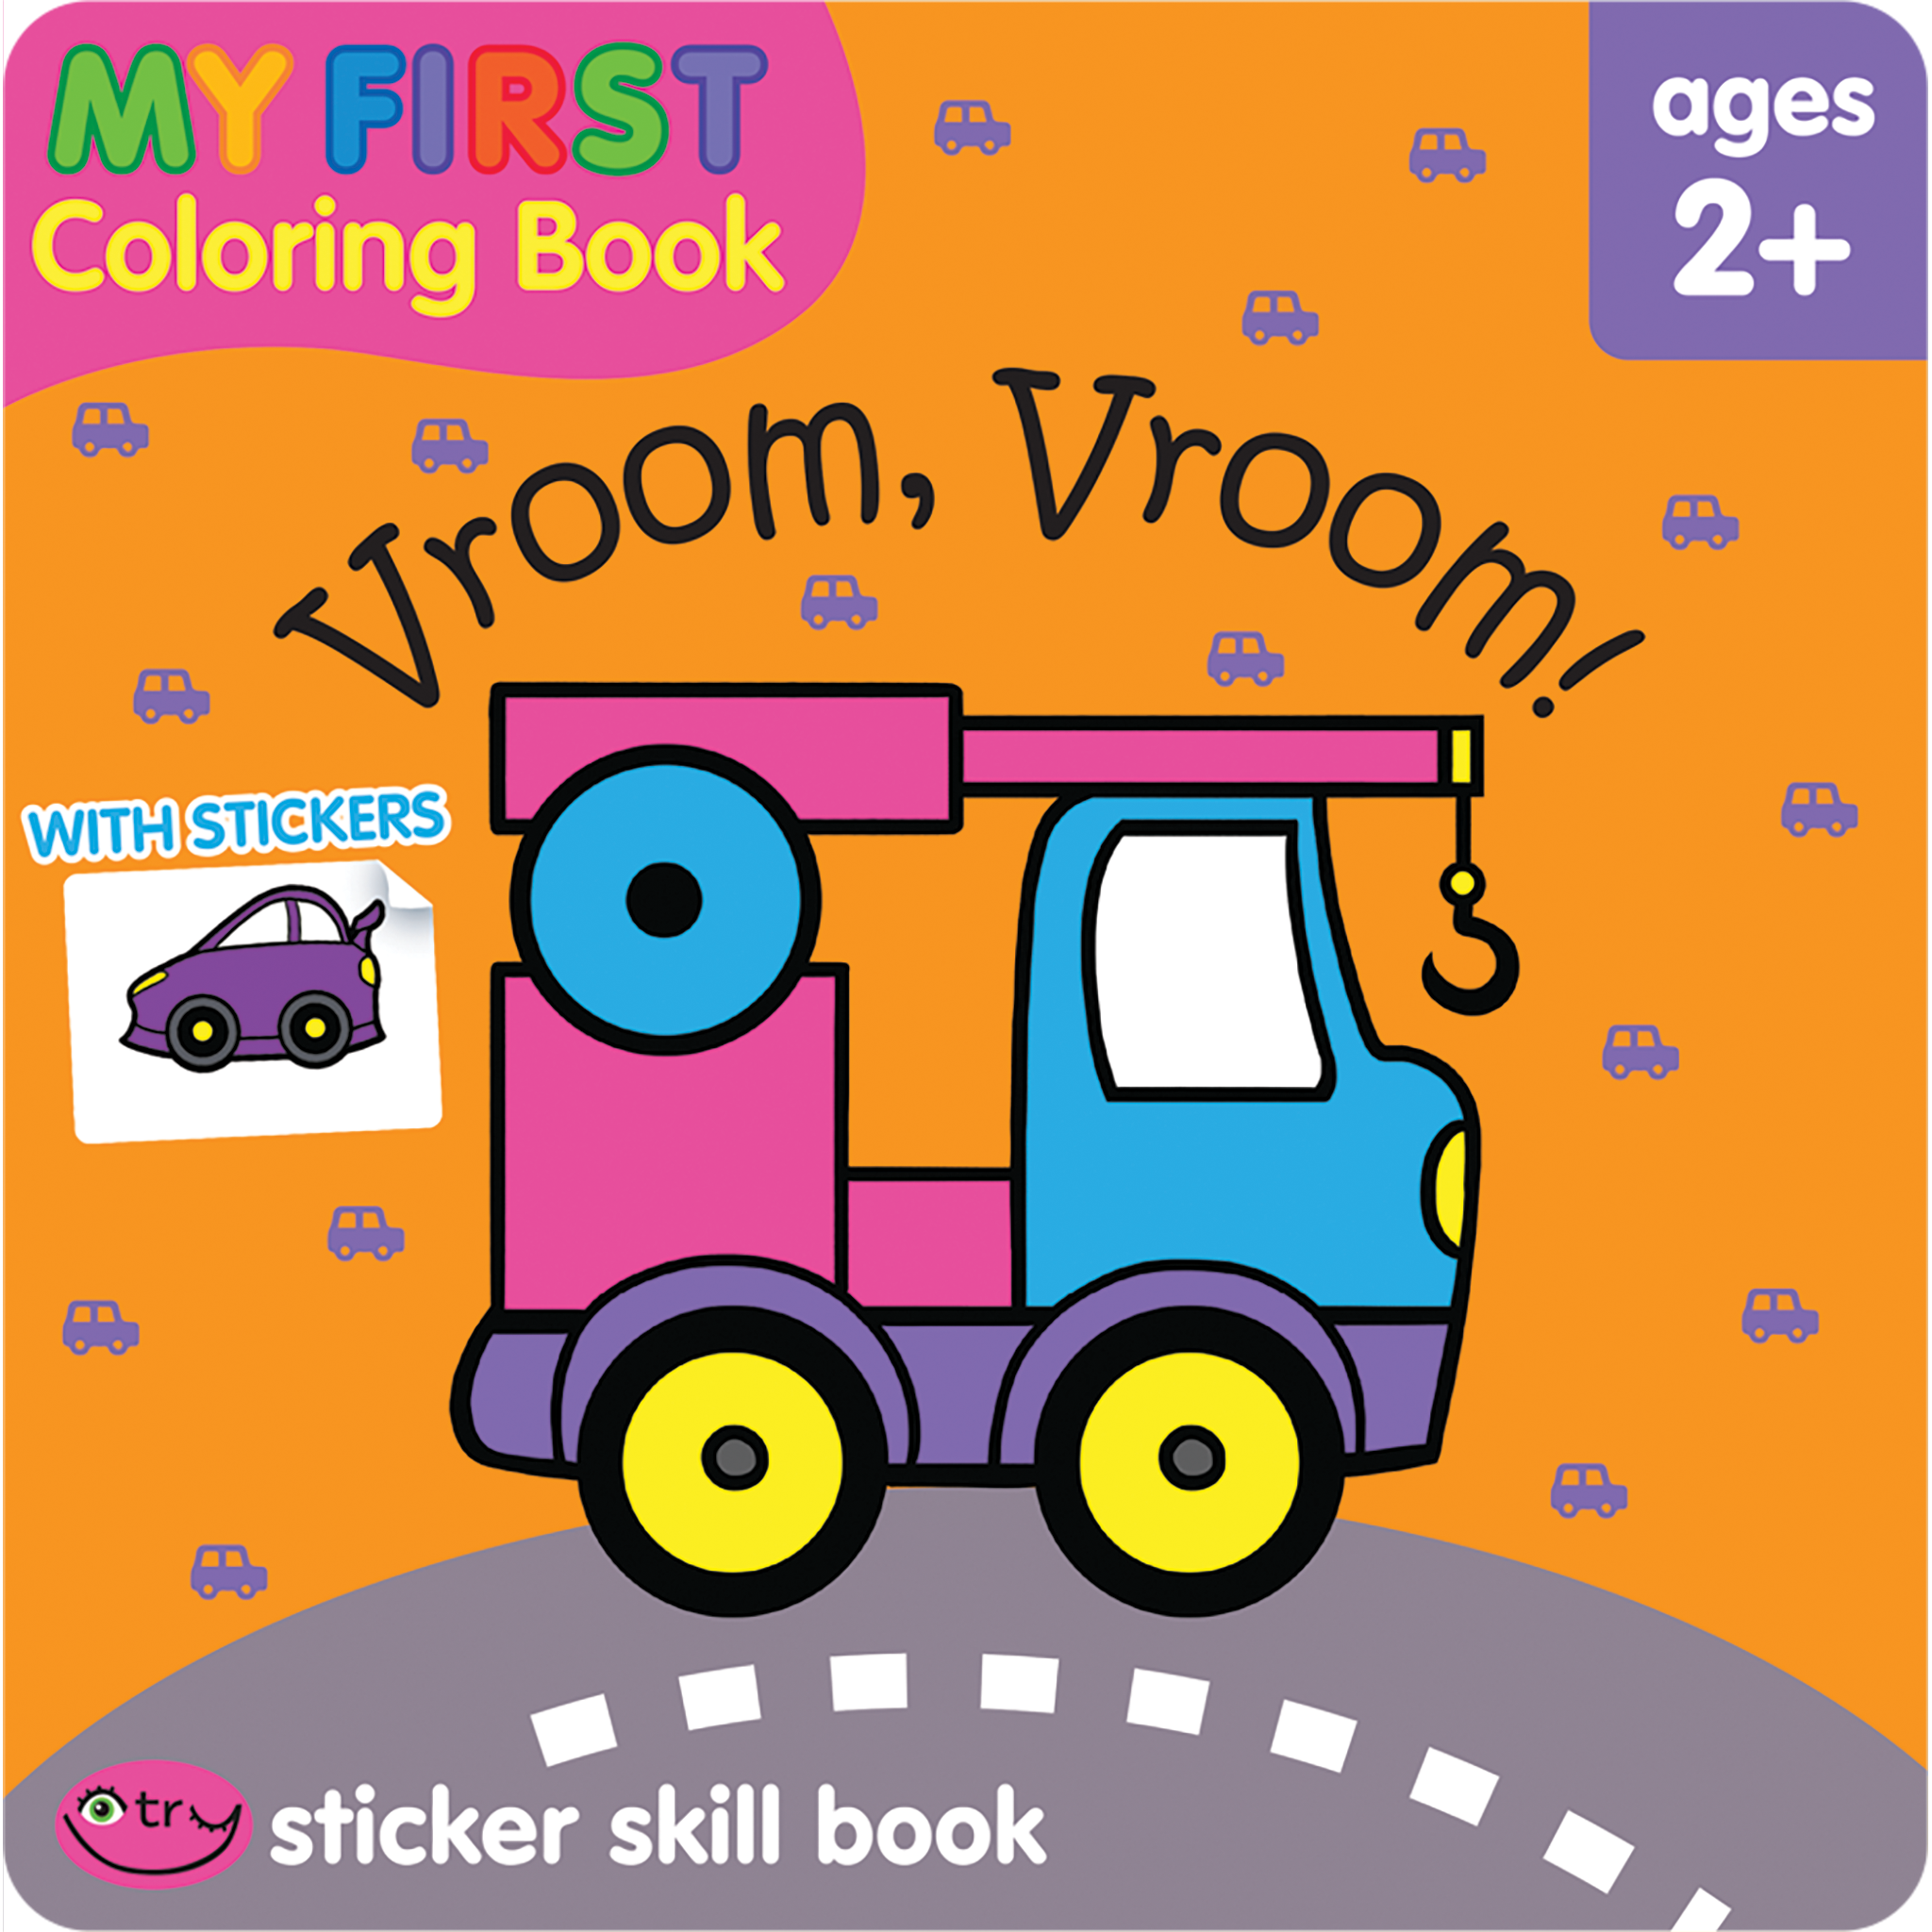 Vroom, Vroom! My First Coloring and Sticker Skill Book